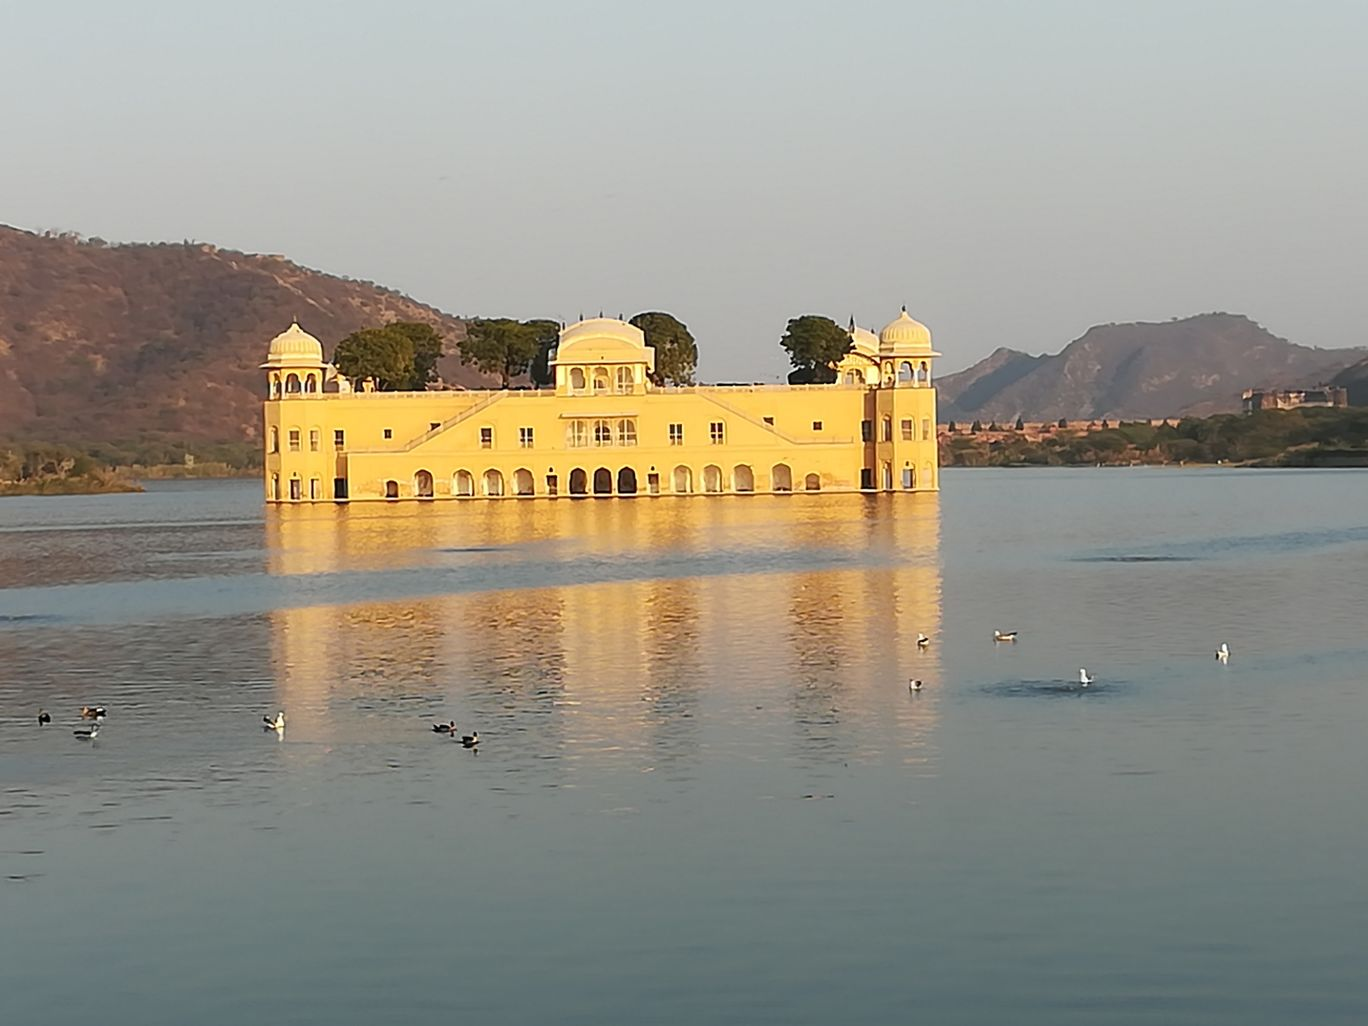 Photo of Jal Mahal By Dilip2all